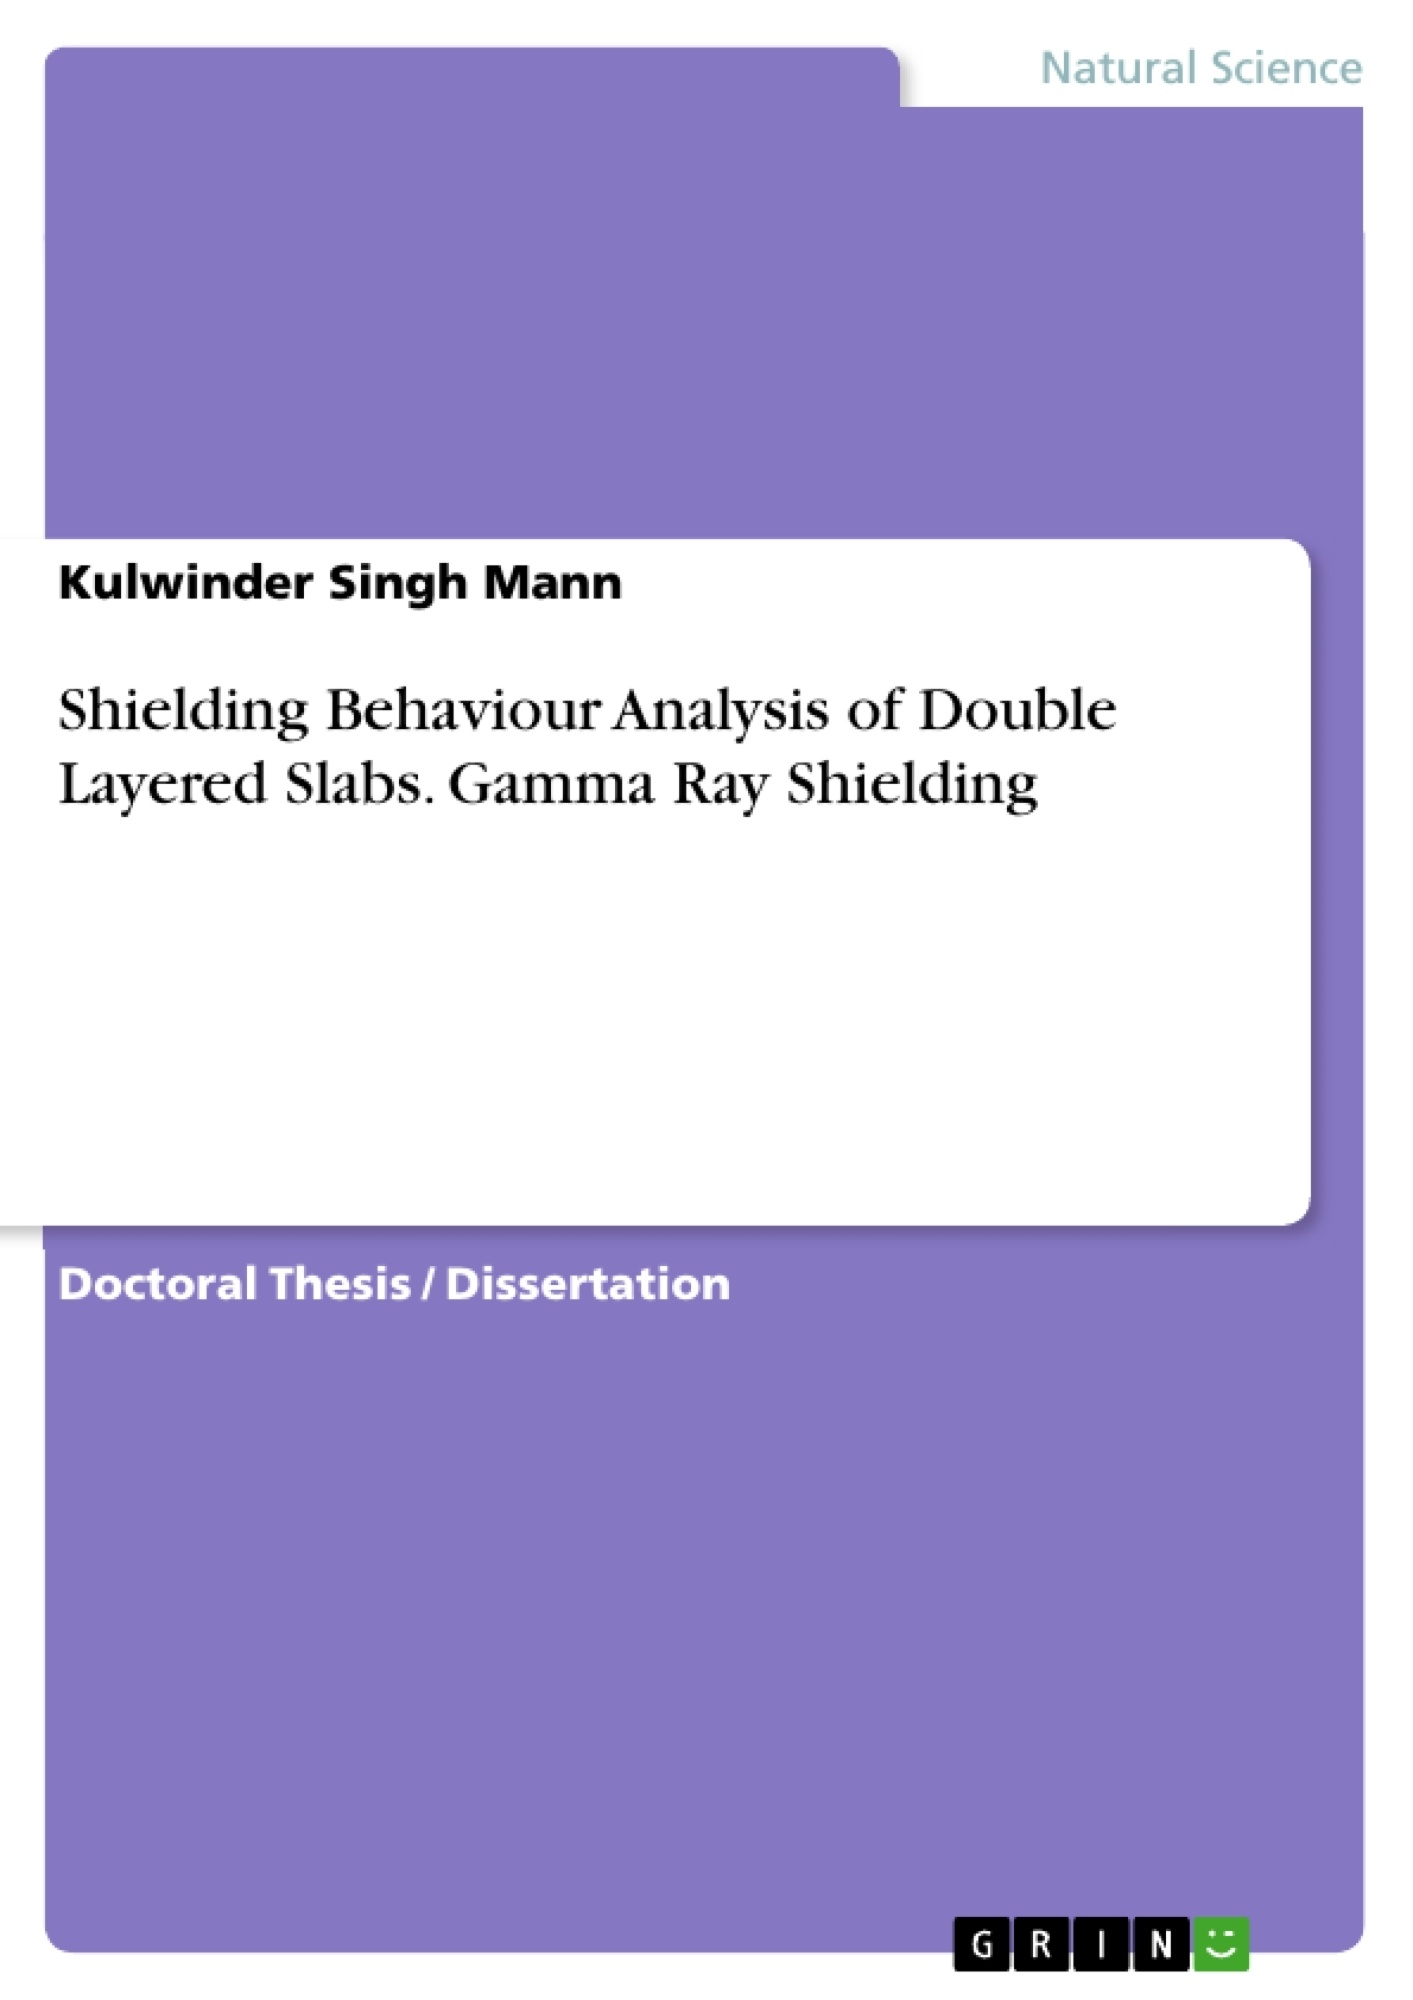 Title: Shielding Behaviour Analysis of Double Layered Slabs. Gamma Ray Shielding